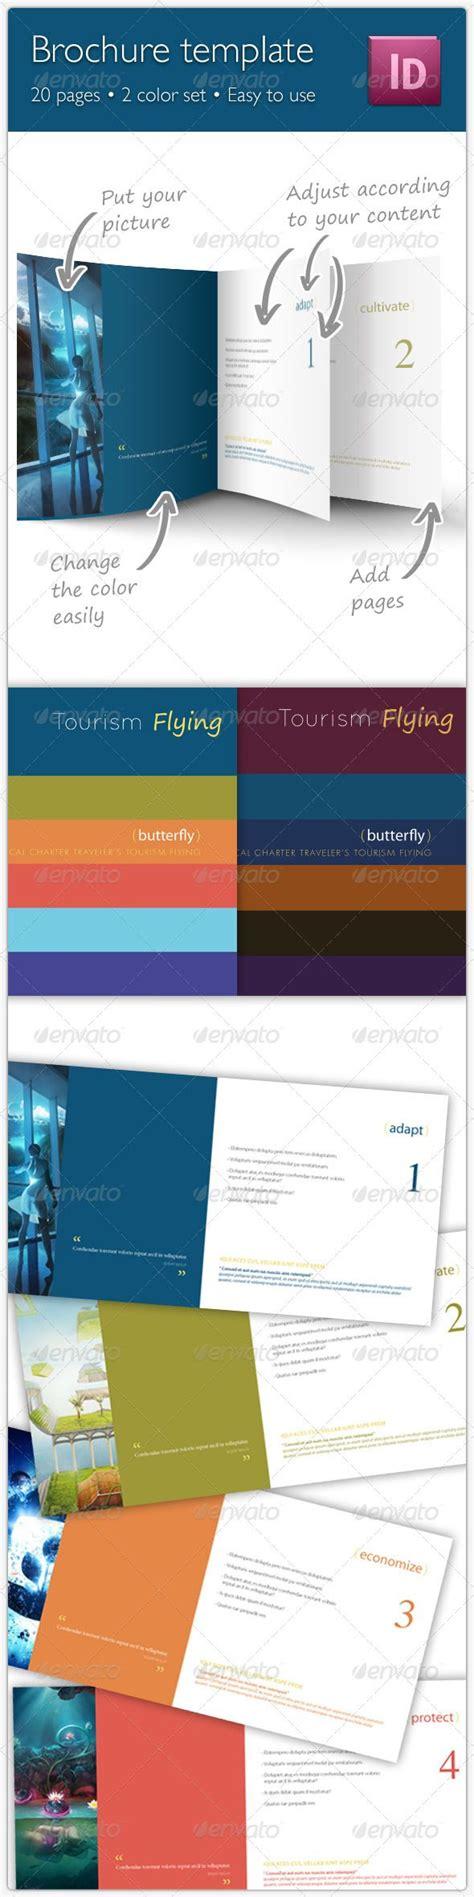 change layout to landscape in indesign 61 best images about indesign on pinterest adobe create